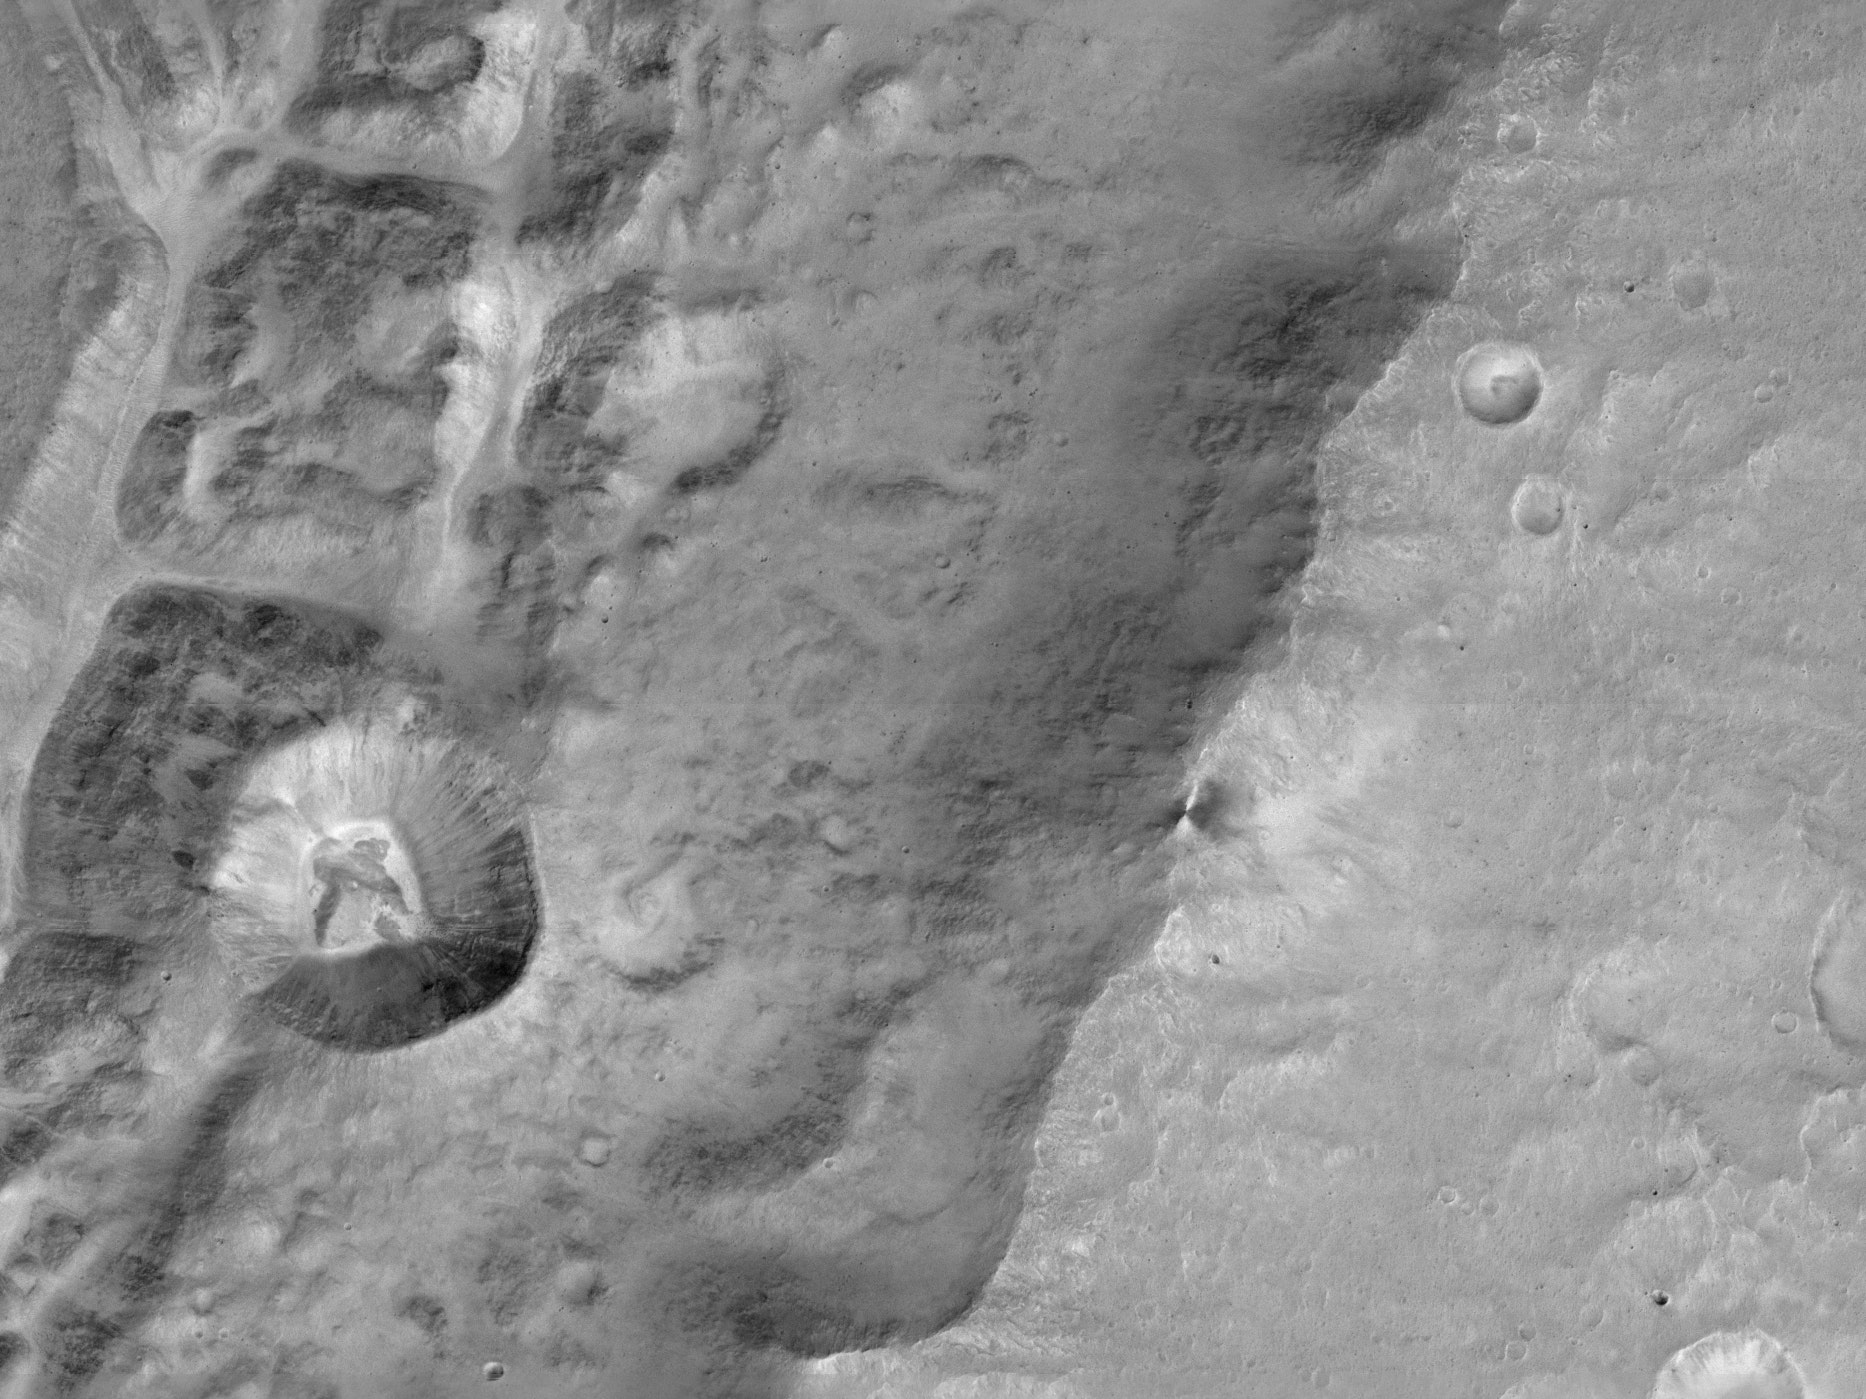 The ExoMars Orbiter's First Images of Mars Are Stunning